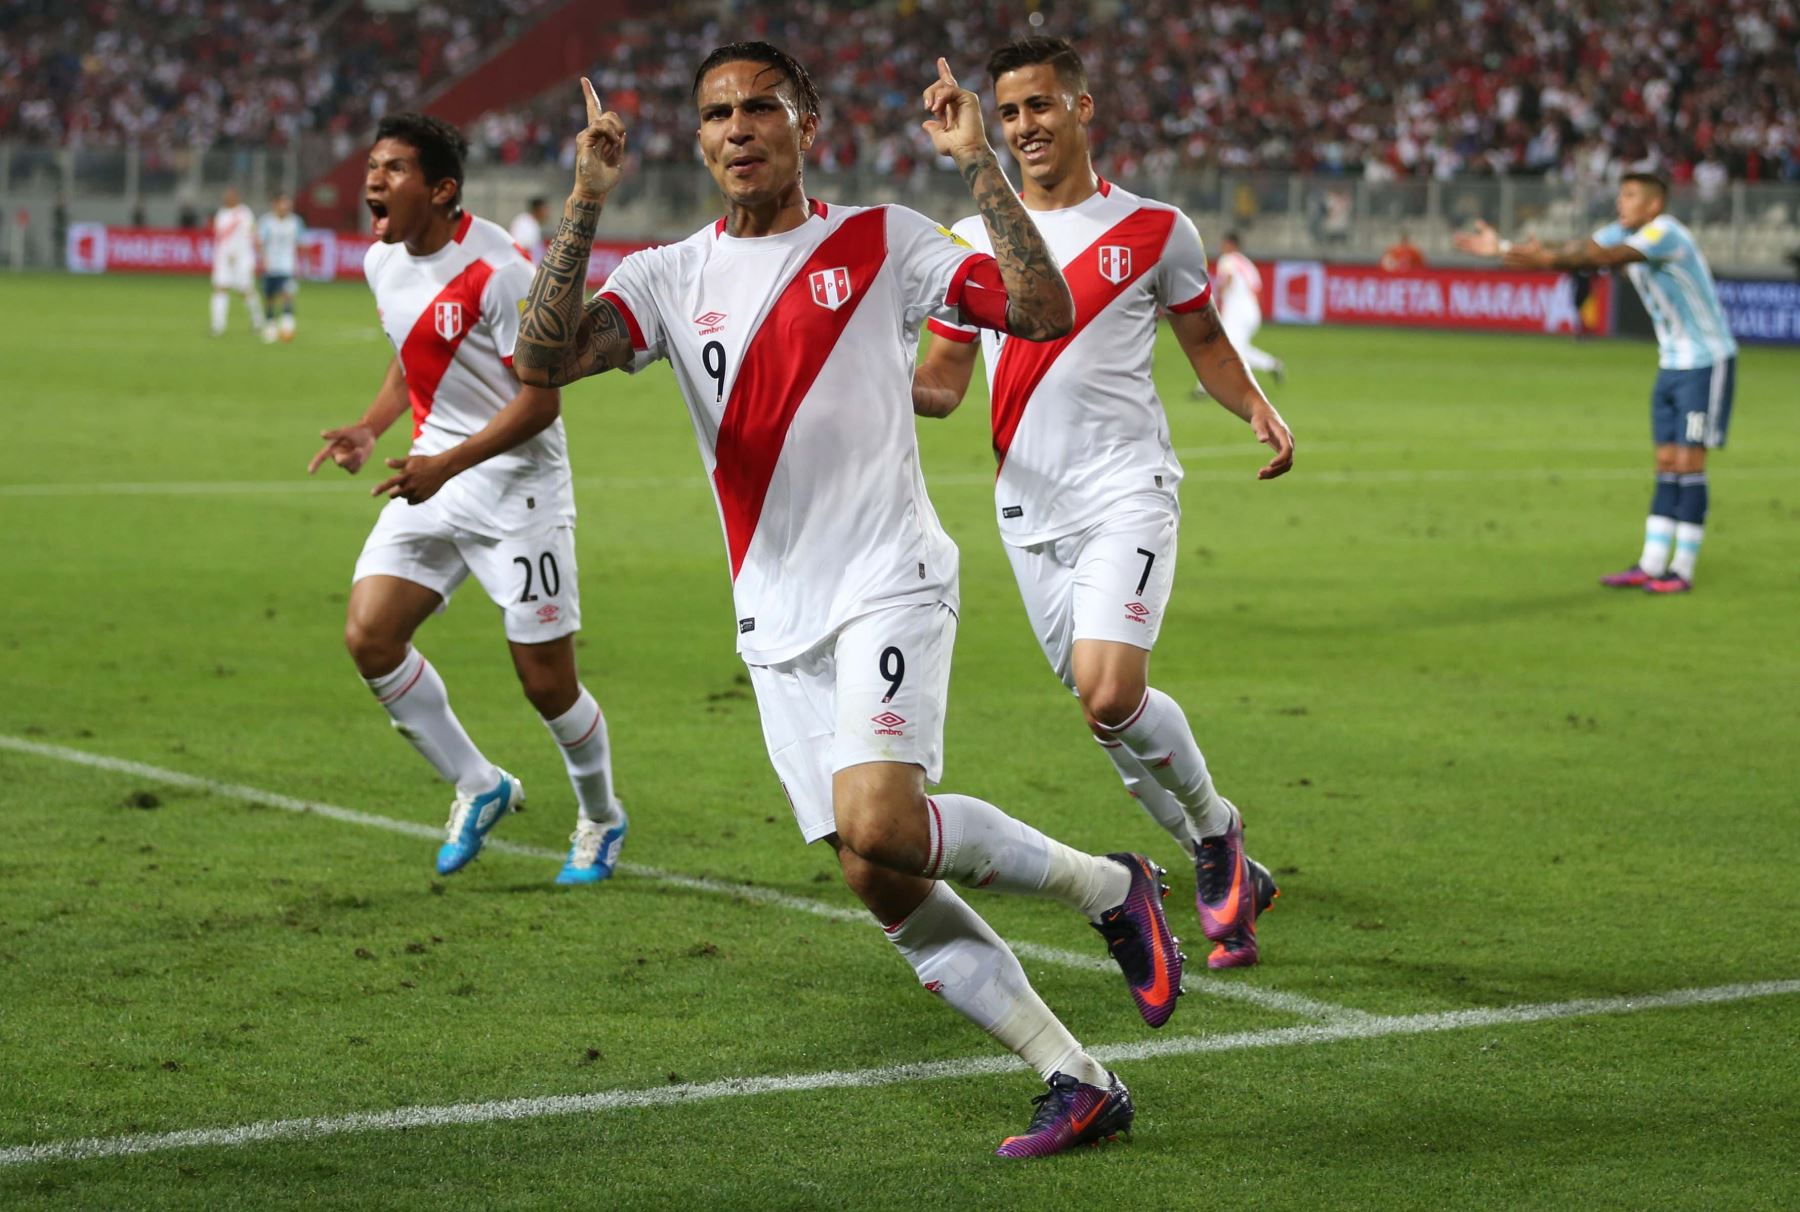 Peru's Guerrero cleared for World Cup as ban cut